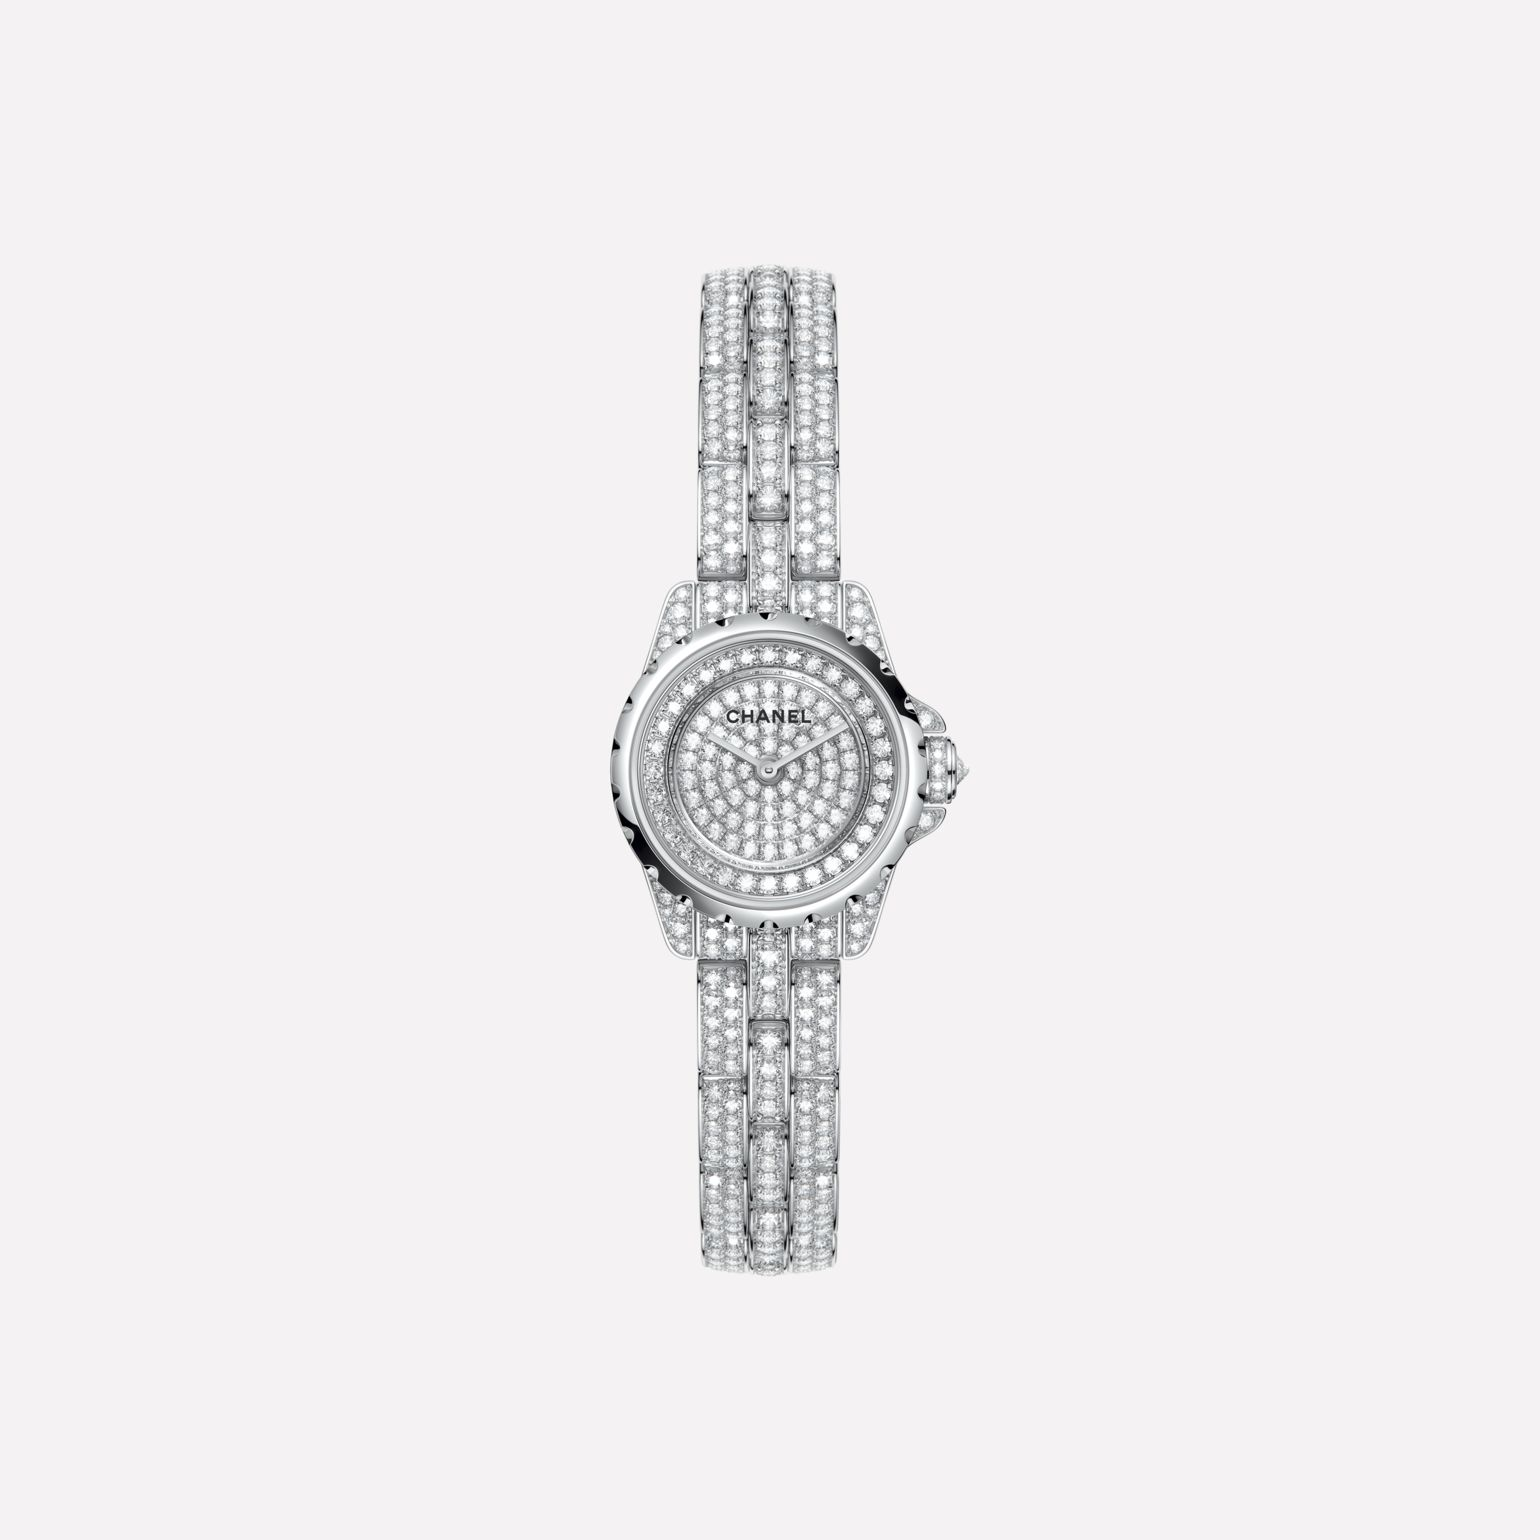 J12·XS High Jewelry Watch, 19 mm White gold, case, dial, bezel, and bracelet set with brilliant-cut diamonds